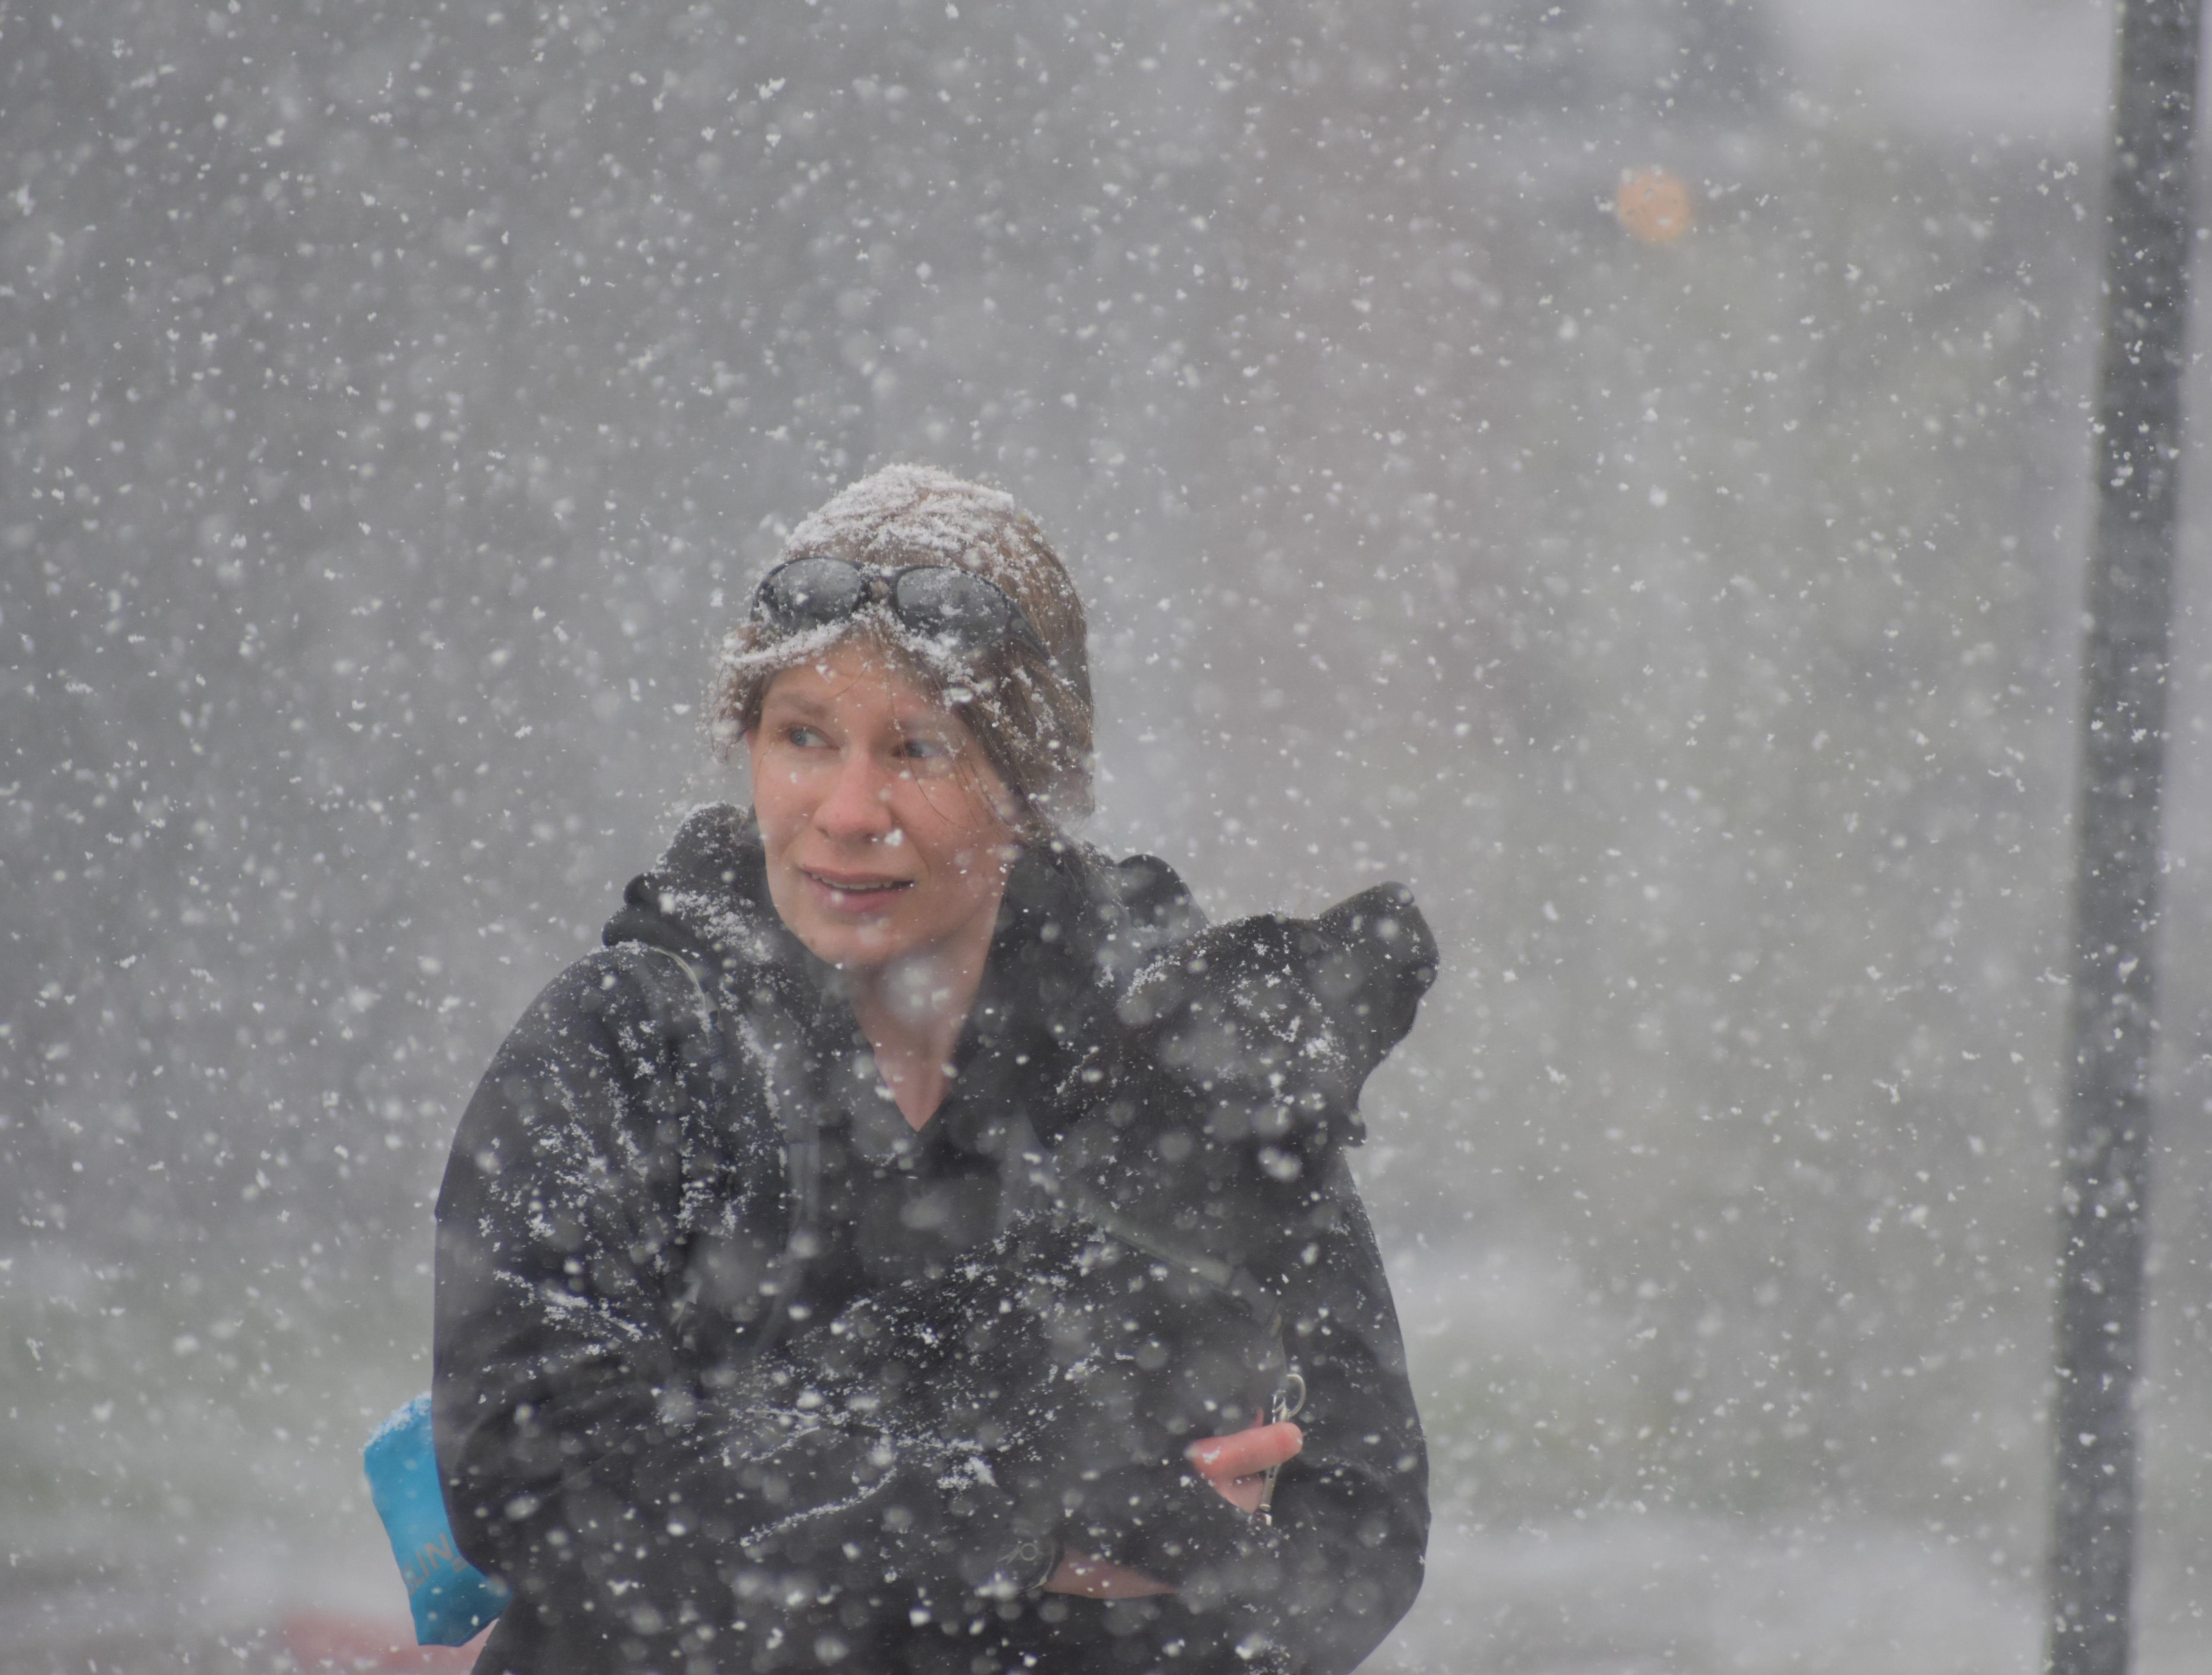 Scenes from Monday's snowstorm in Fort Collins.